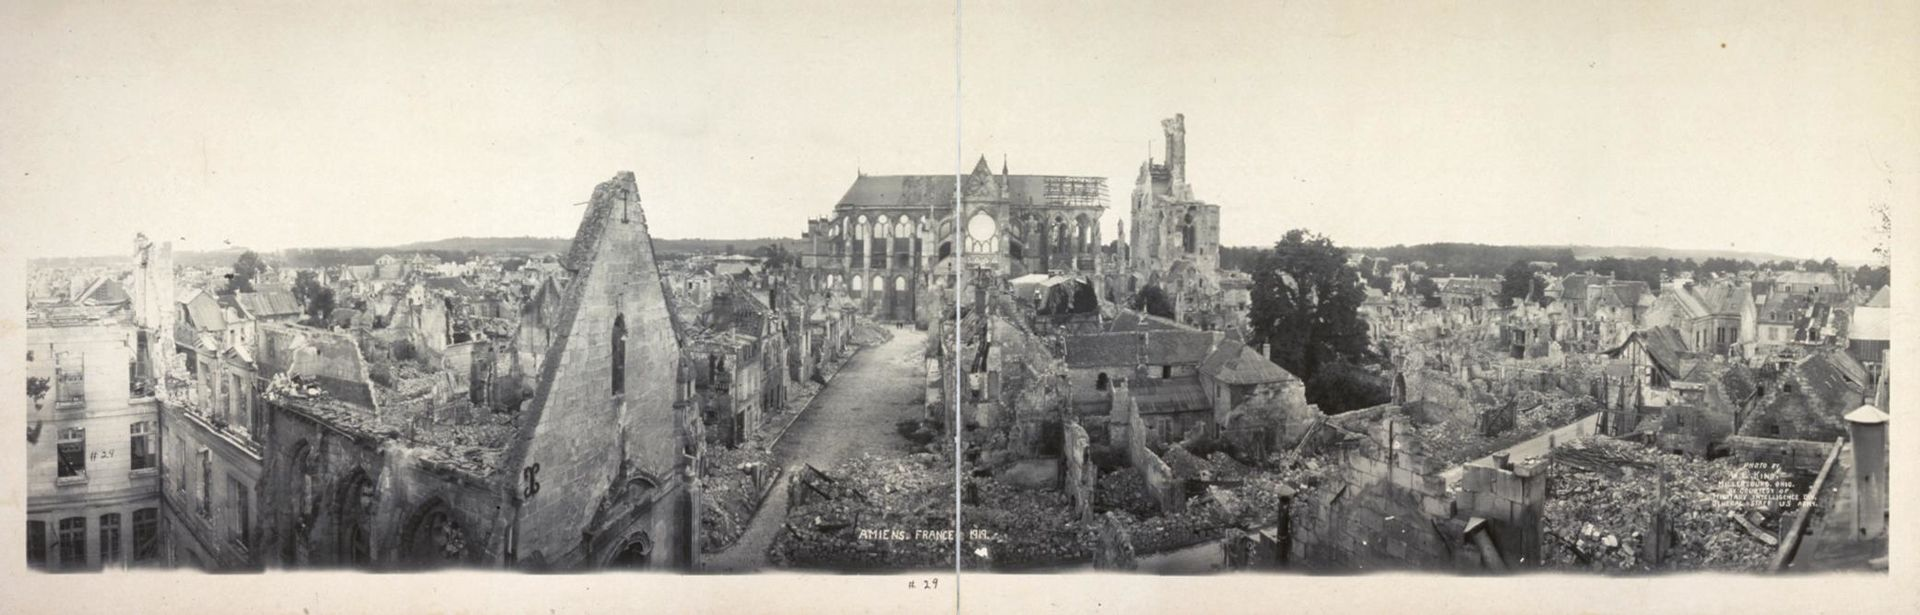 Life after wartime: rubble was the key motif in the immediate aftermath of the war